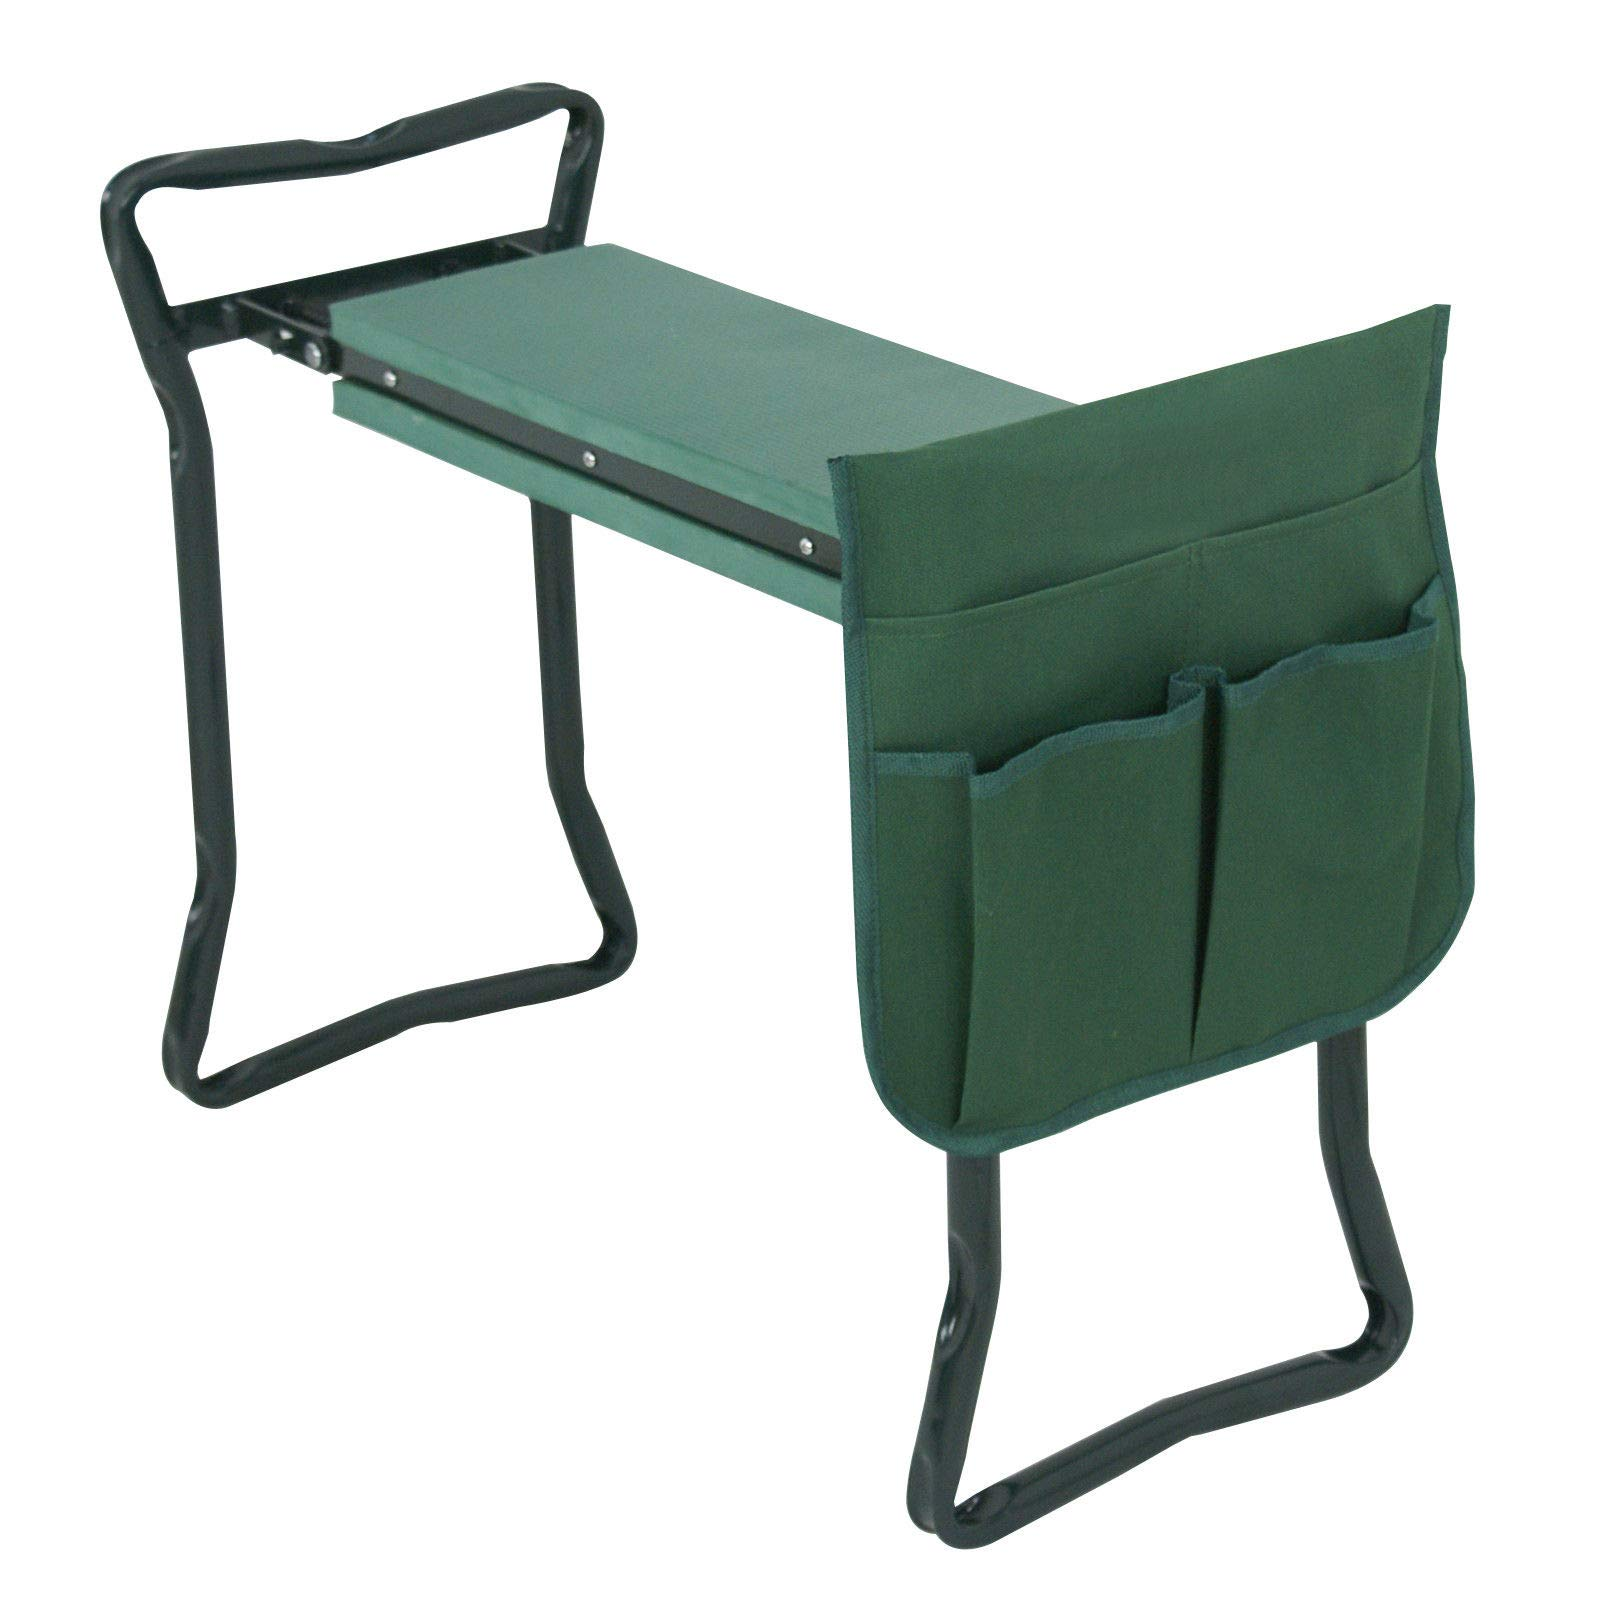 Best Direct Deals Foldable Garden Kneeler and Seat with Bonus Tool Pouch Portable Stool EVA Pad Folding Bench Stool by Best Direct Deals